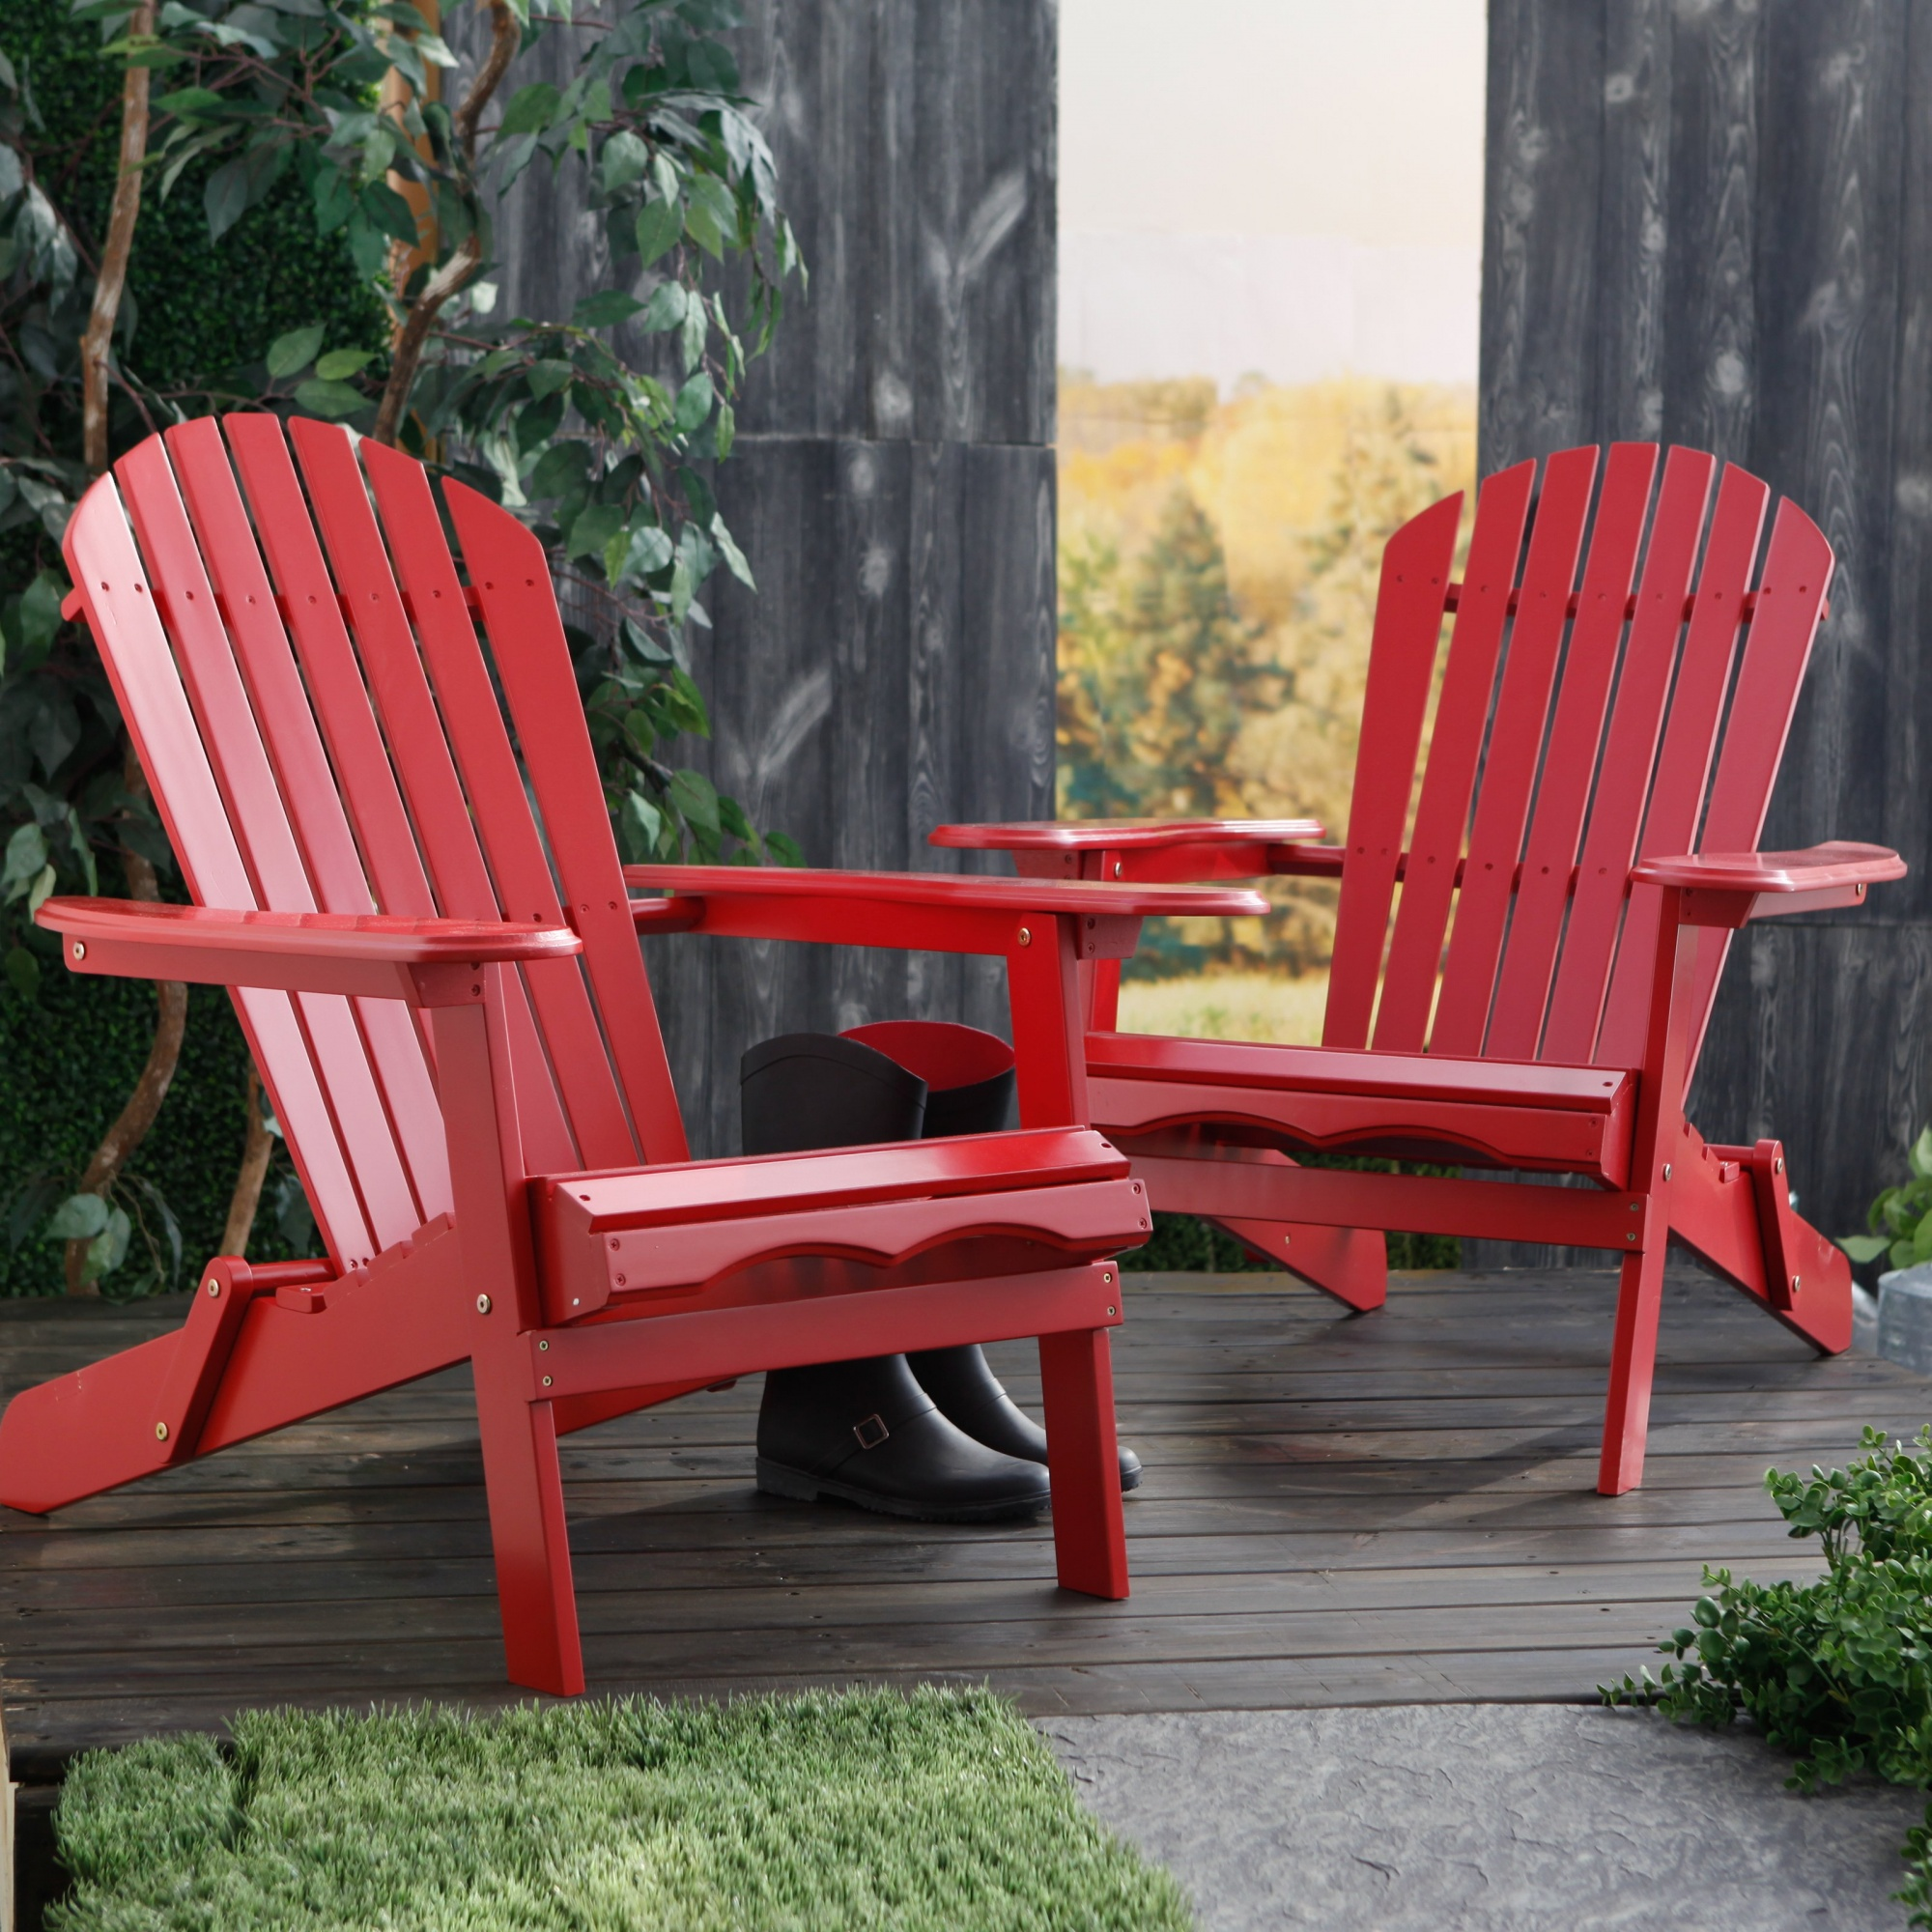 Super Set Of 2 Cape Cod Foldable Adirondack Chairs Red By Merry Interior Design Ideas Tzicisoteloinfo